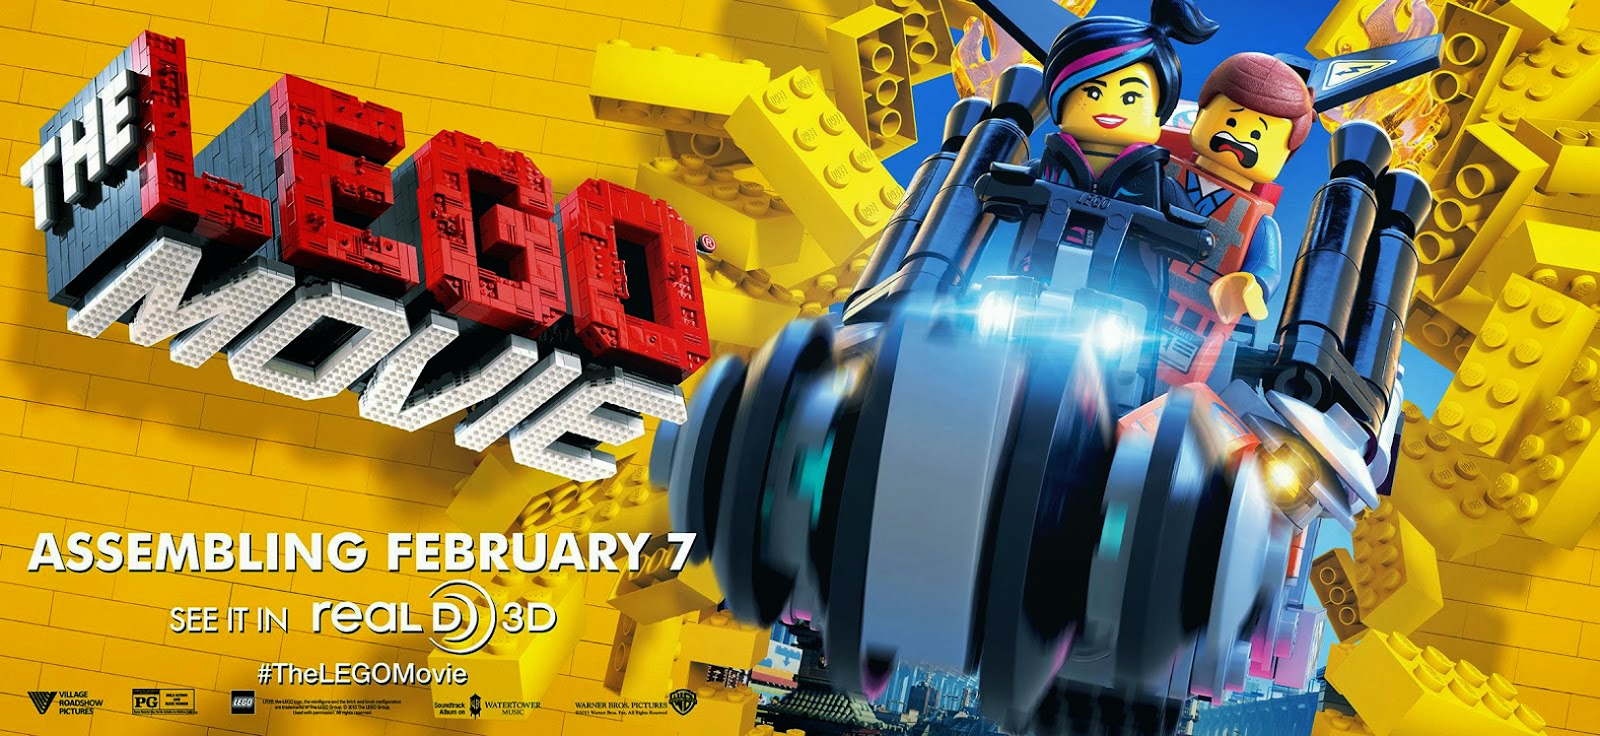 Lego Movie 2014 Lego Heroes HD Wallpaper